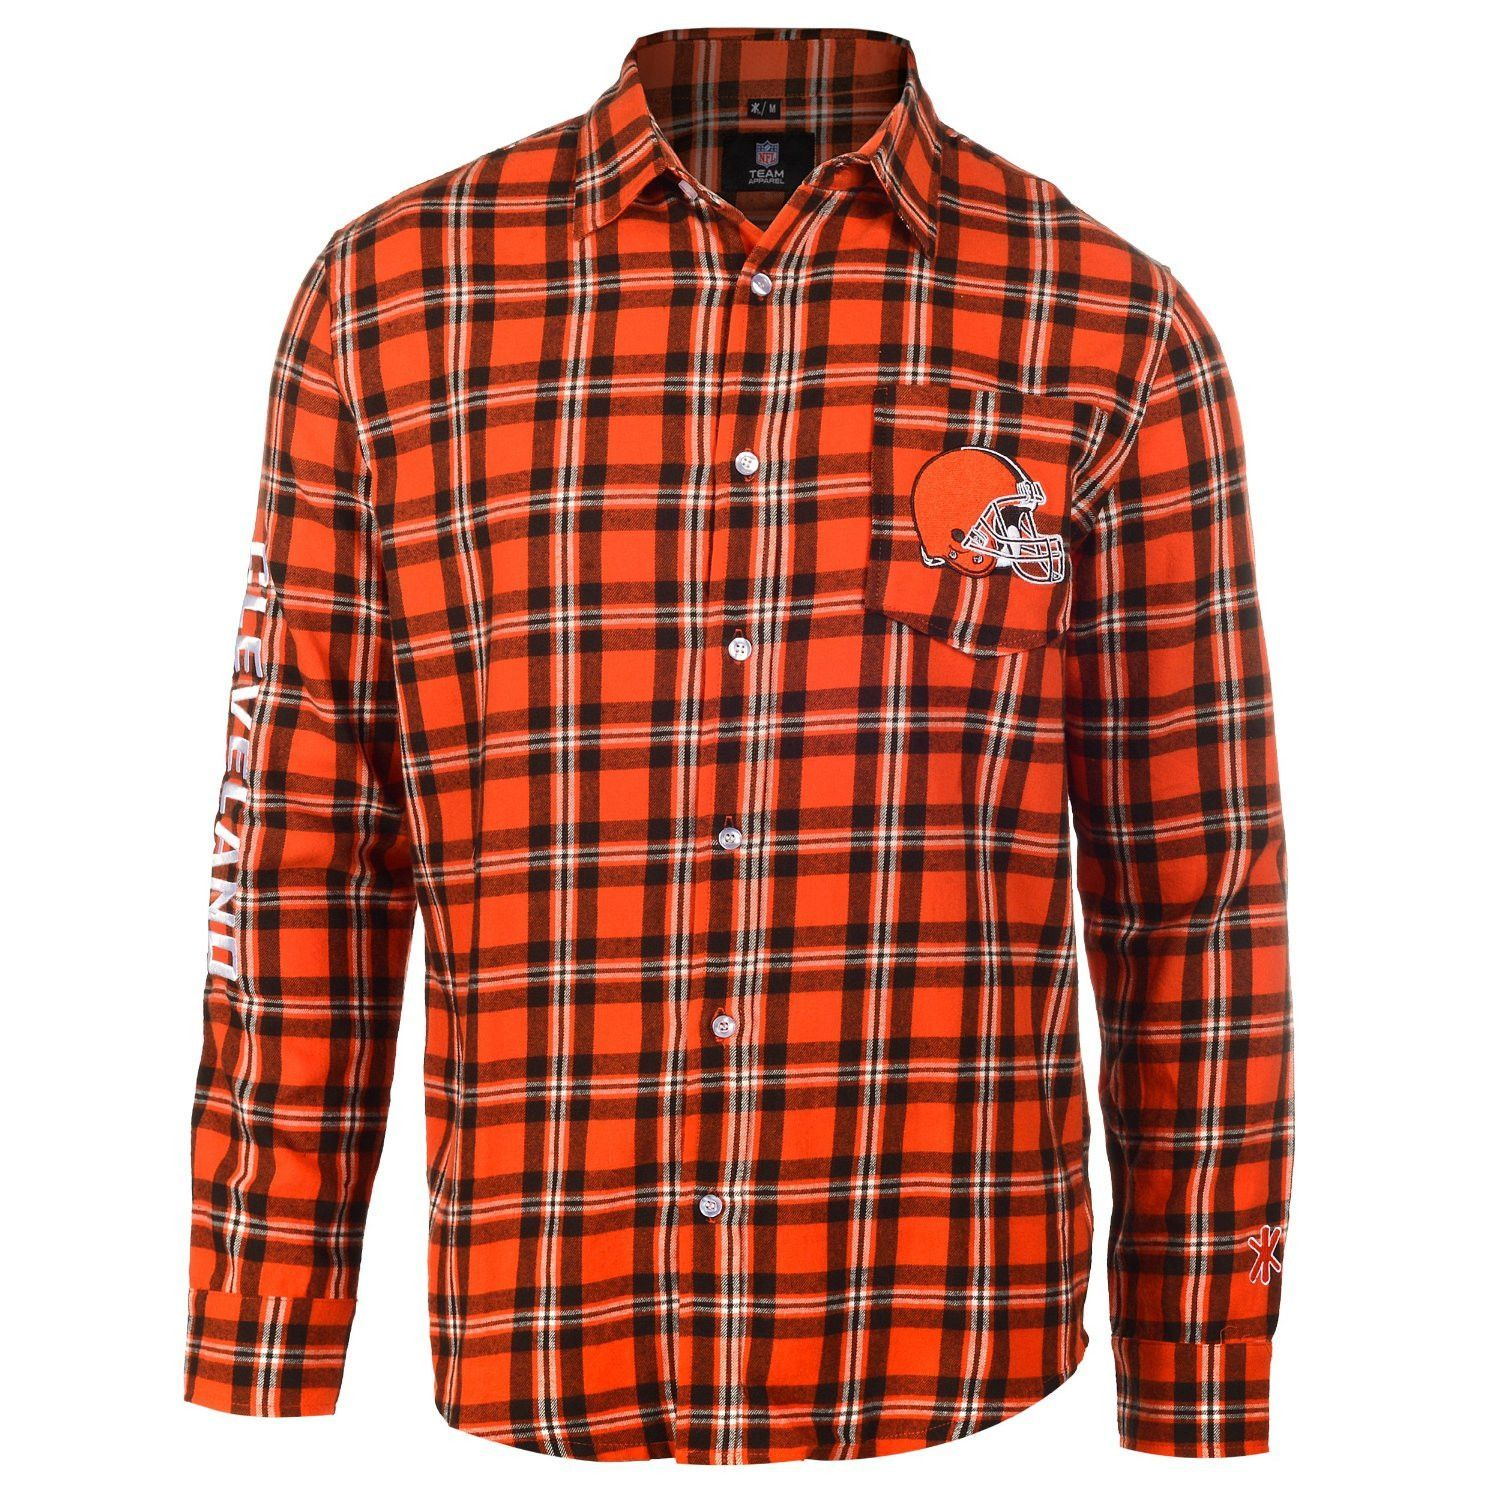 Cleveland Browns Wordmark Basic Flannel Long Sleeve Shirt Sizes S-XXL w/ Priority Shipping